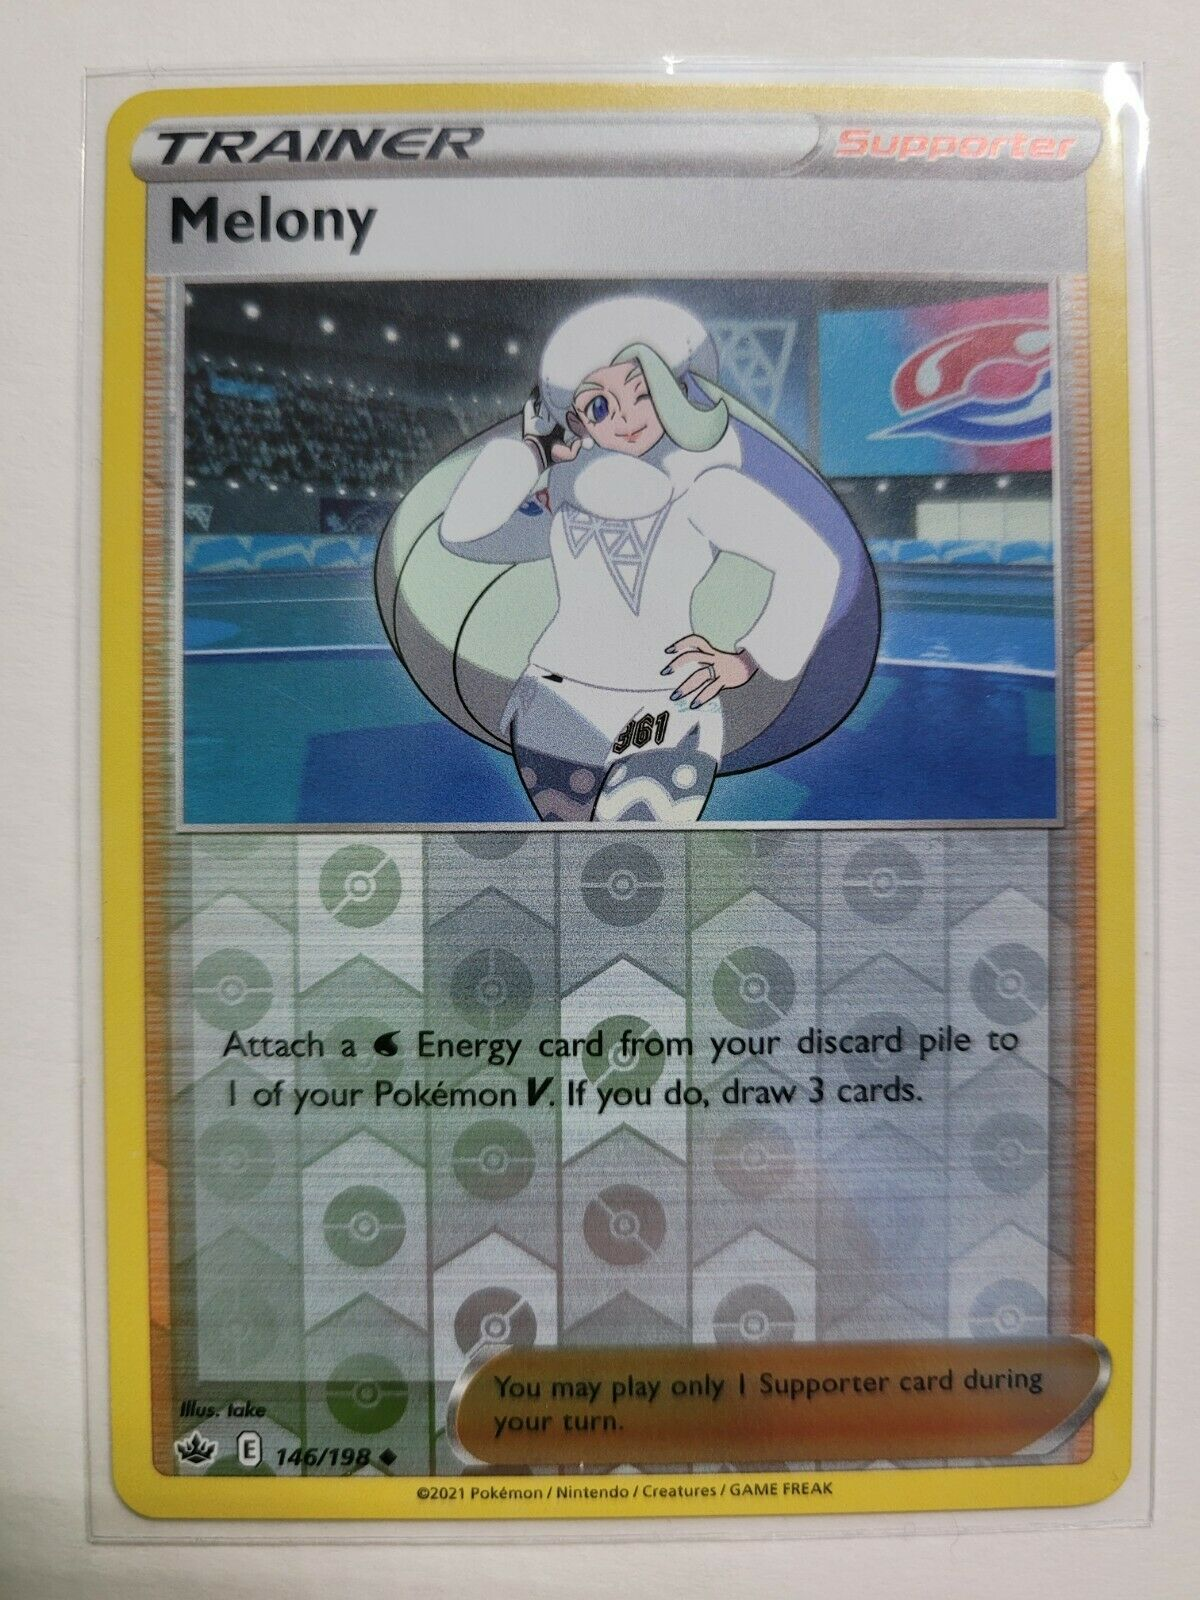 POKEMON TRAINER MELONY REVERSE HOLO 146/198-CHILLING REIGN